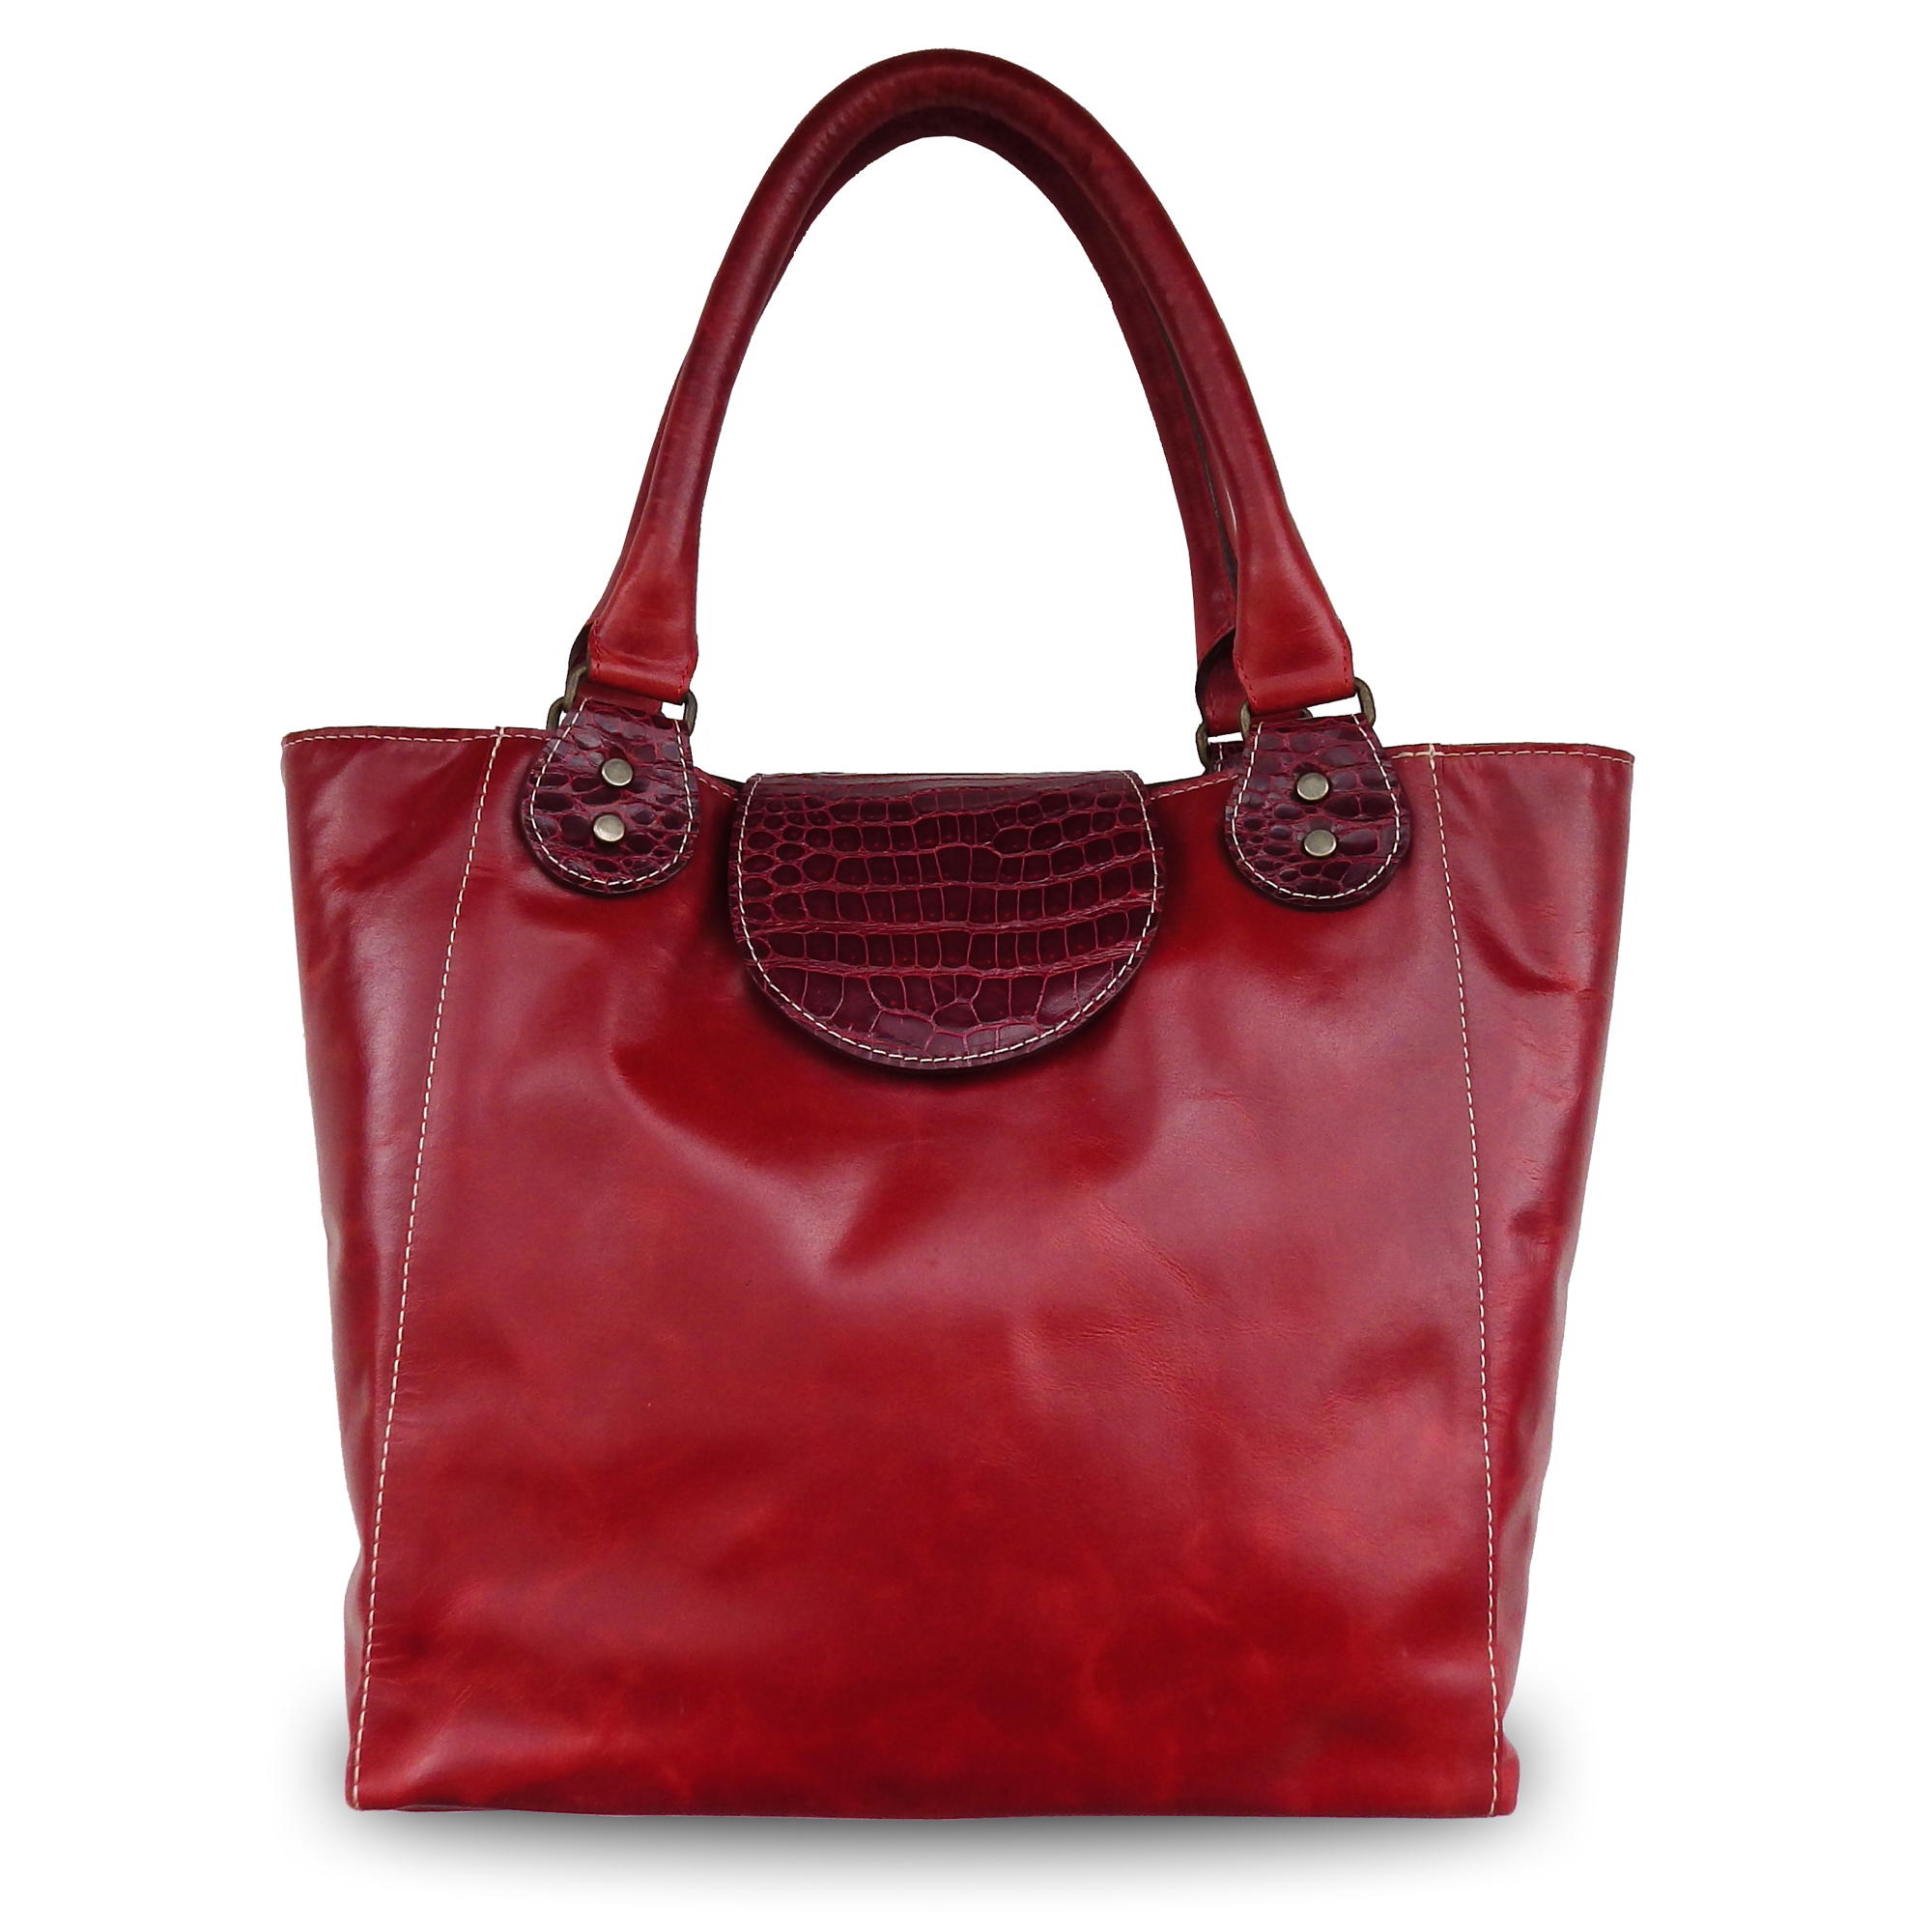 Sac トート バッグ Figue